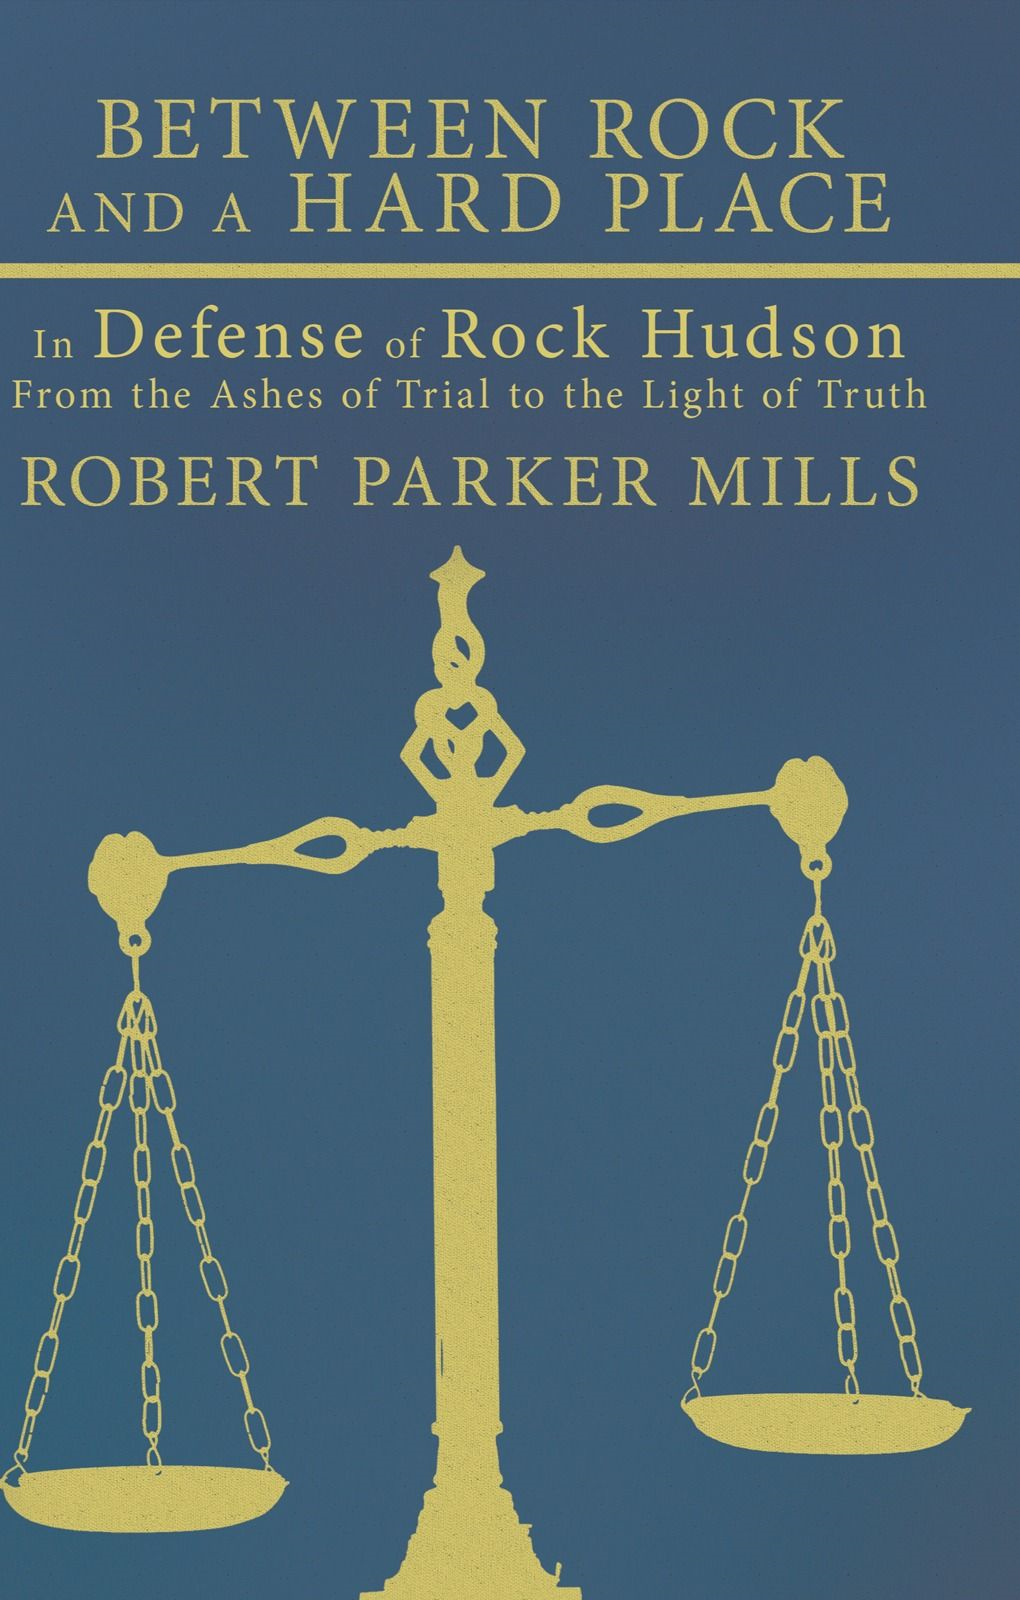 Between Rock And A Hard Place By: Robert Parker Mills